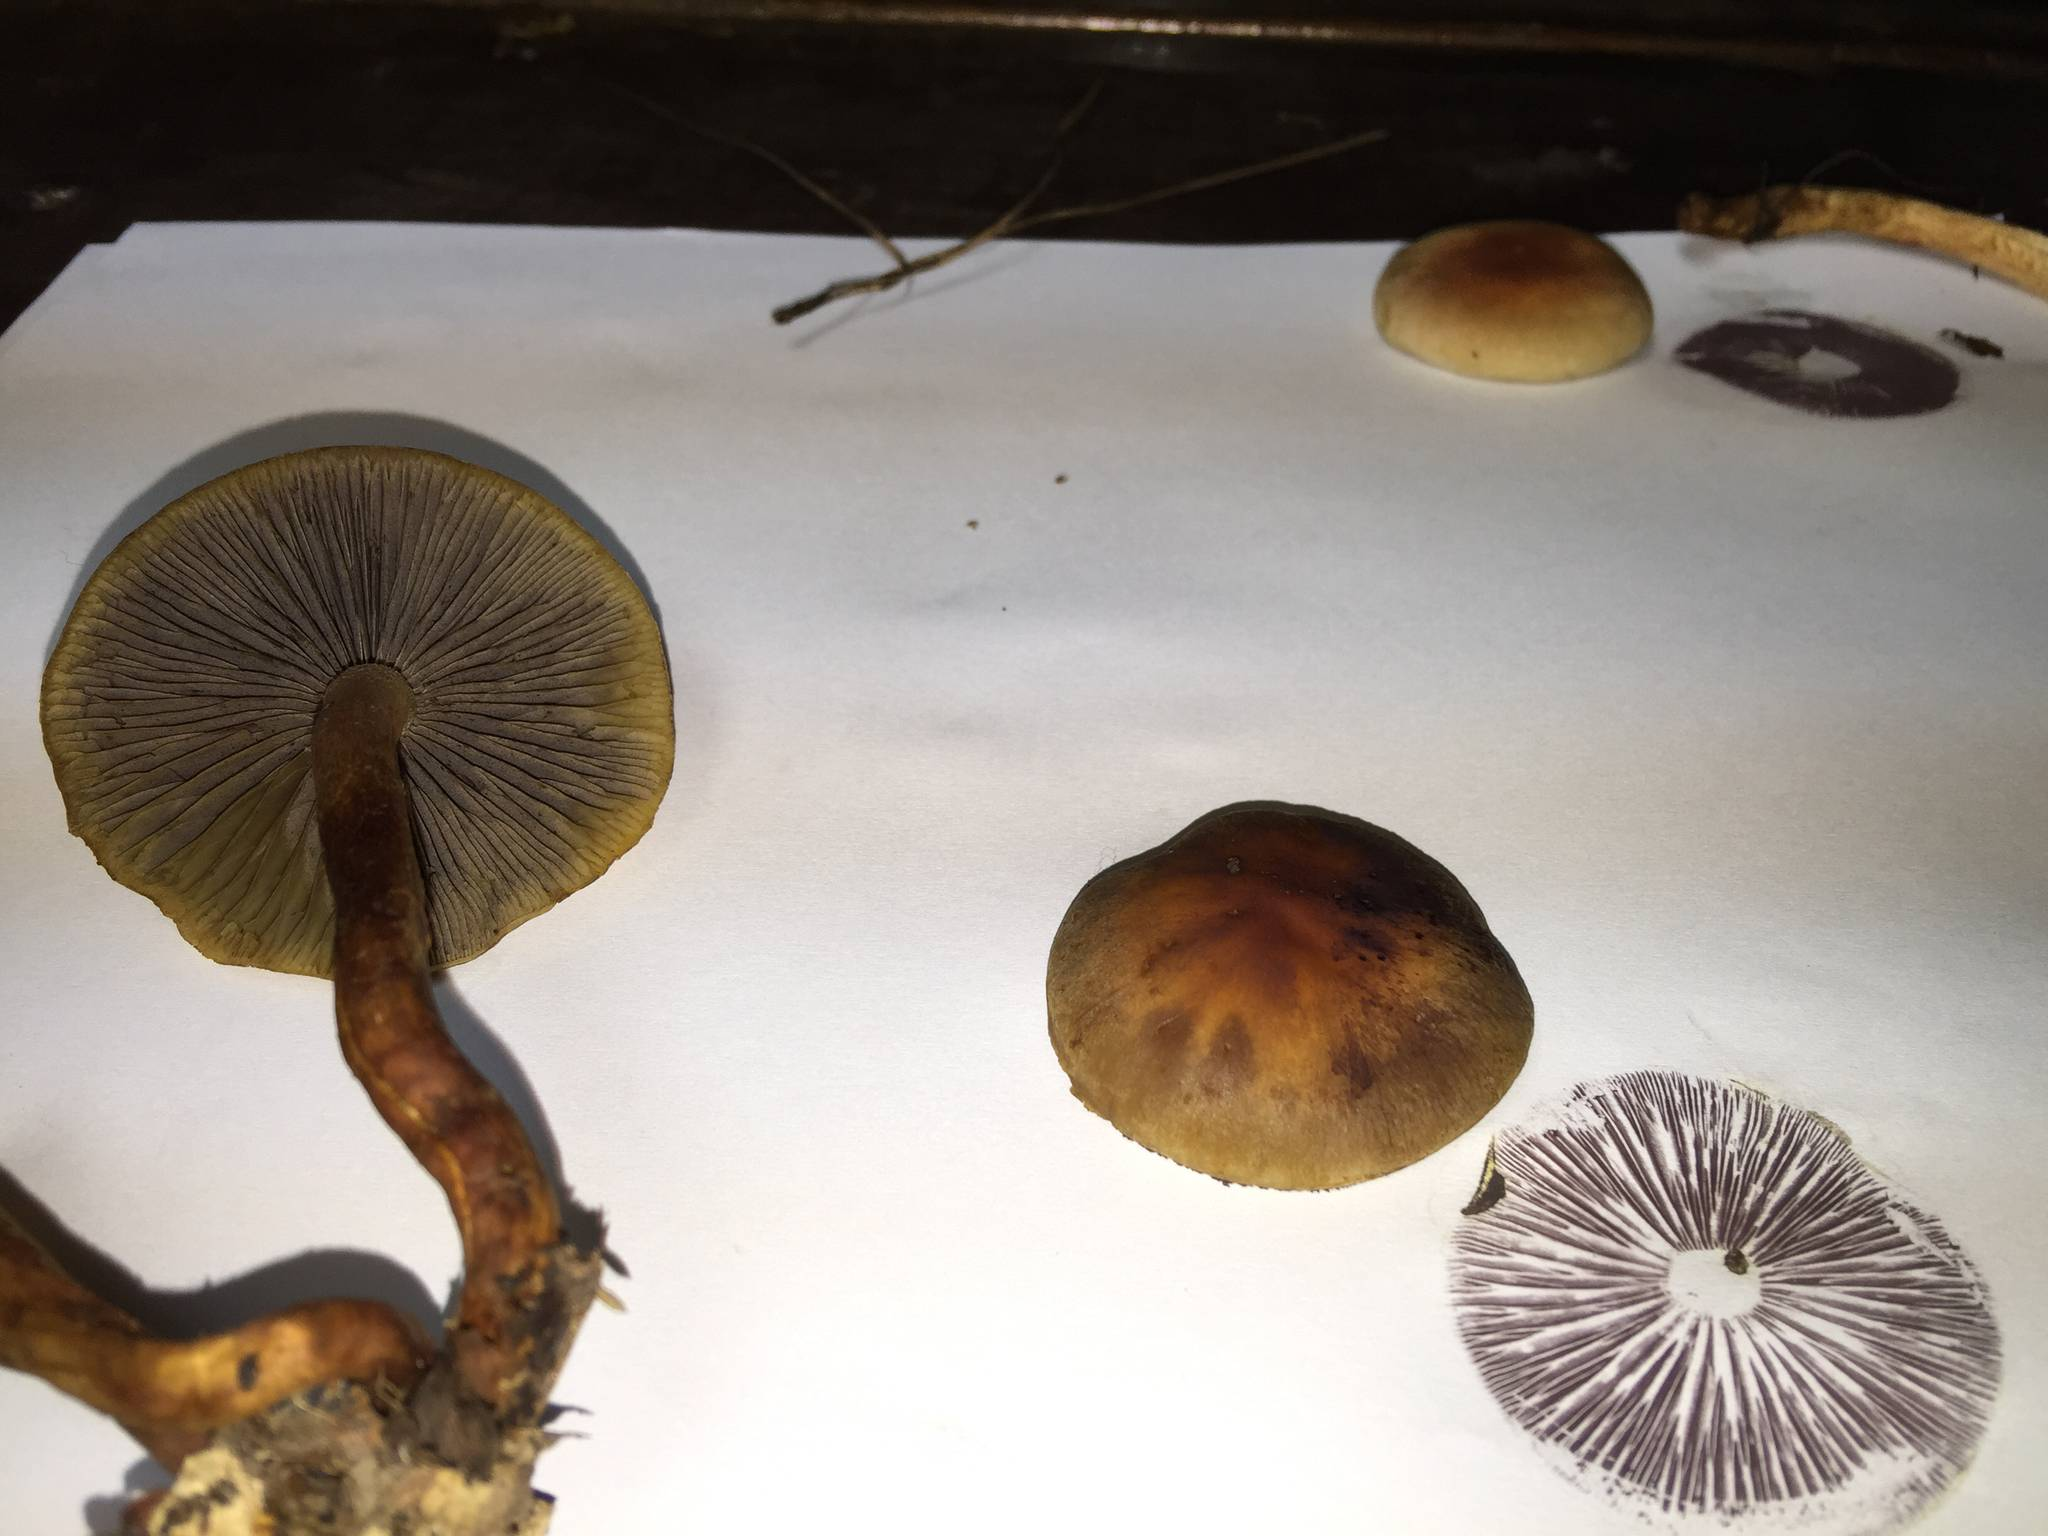 Gyms? - black/purple spore print - Mushroom Hunting and ...